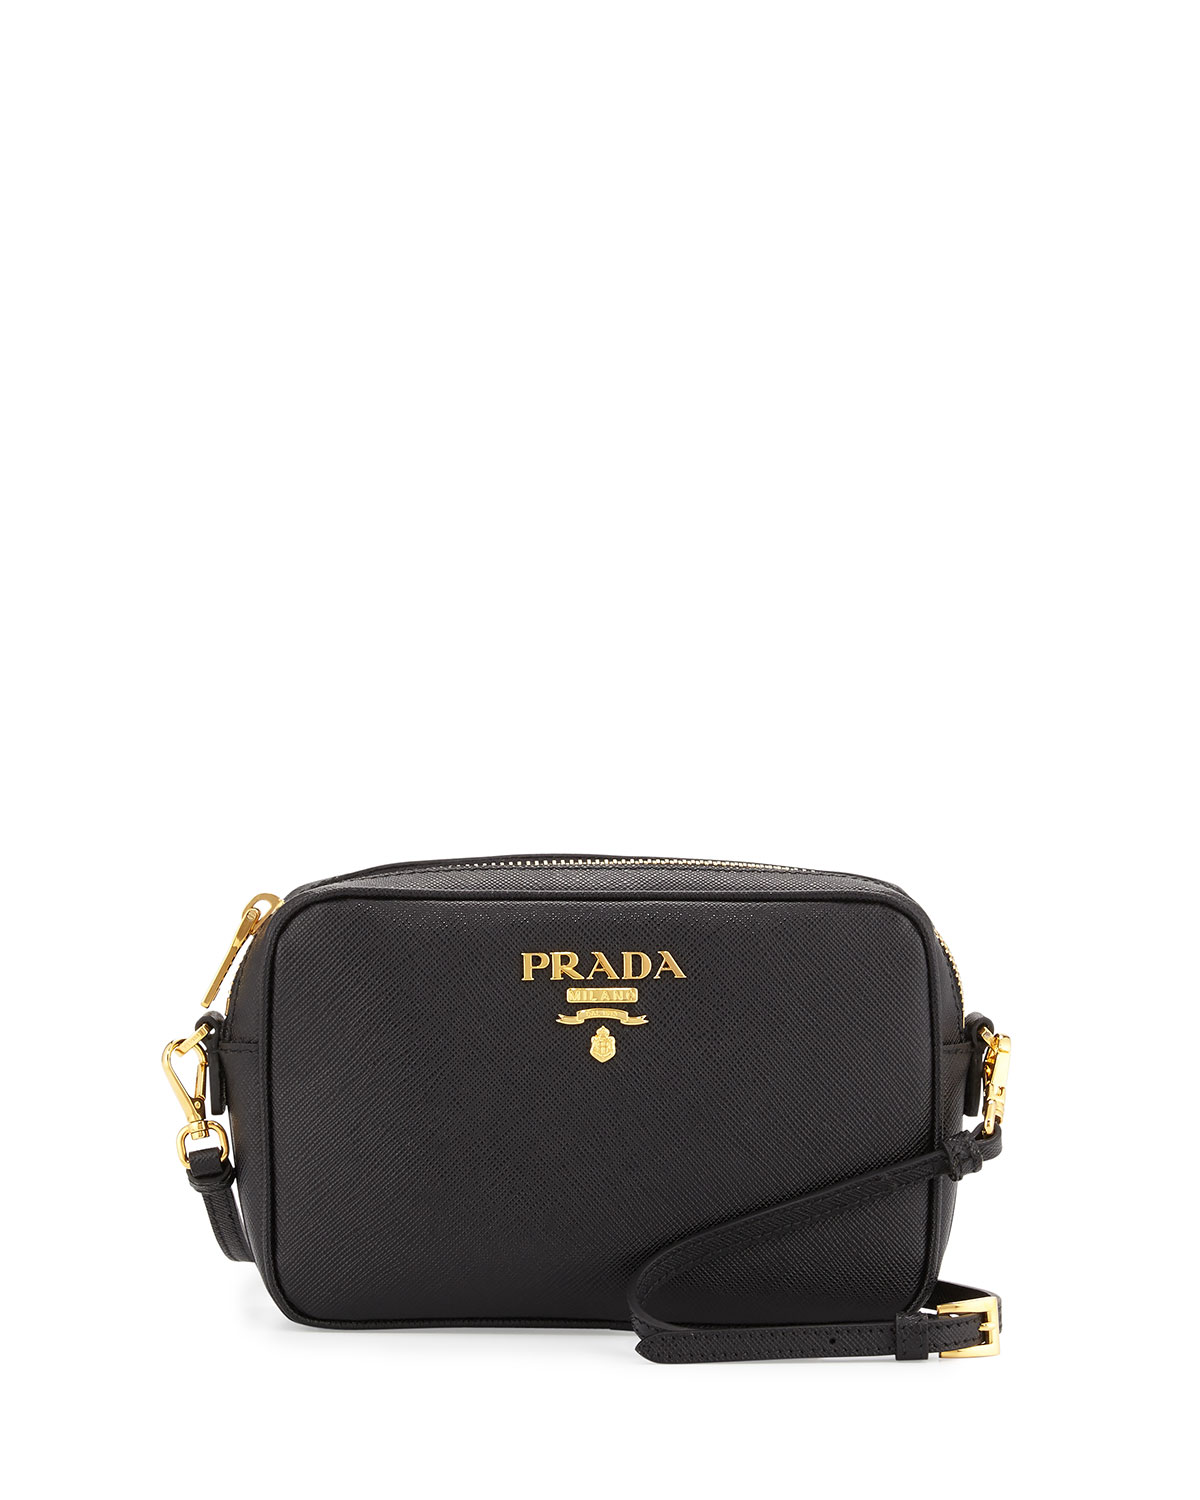 c9ca469f12 Prada Small Saffiano Camera Crossbody Bag